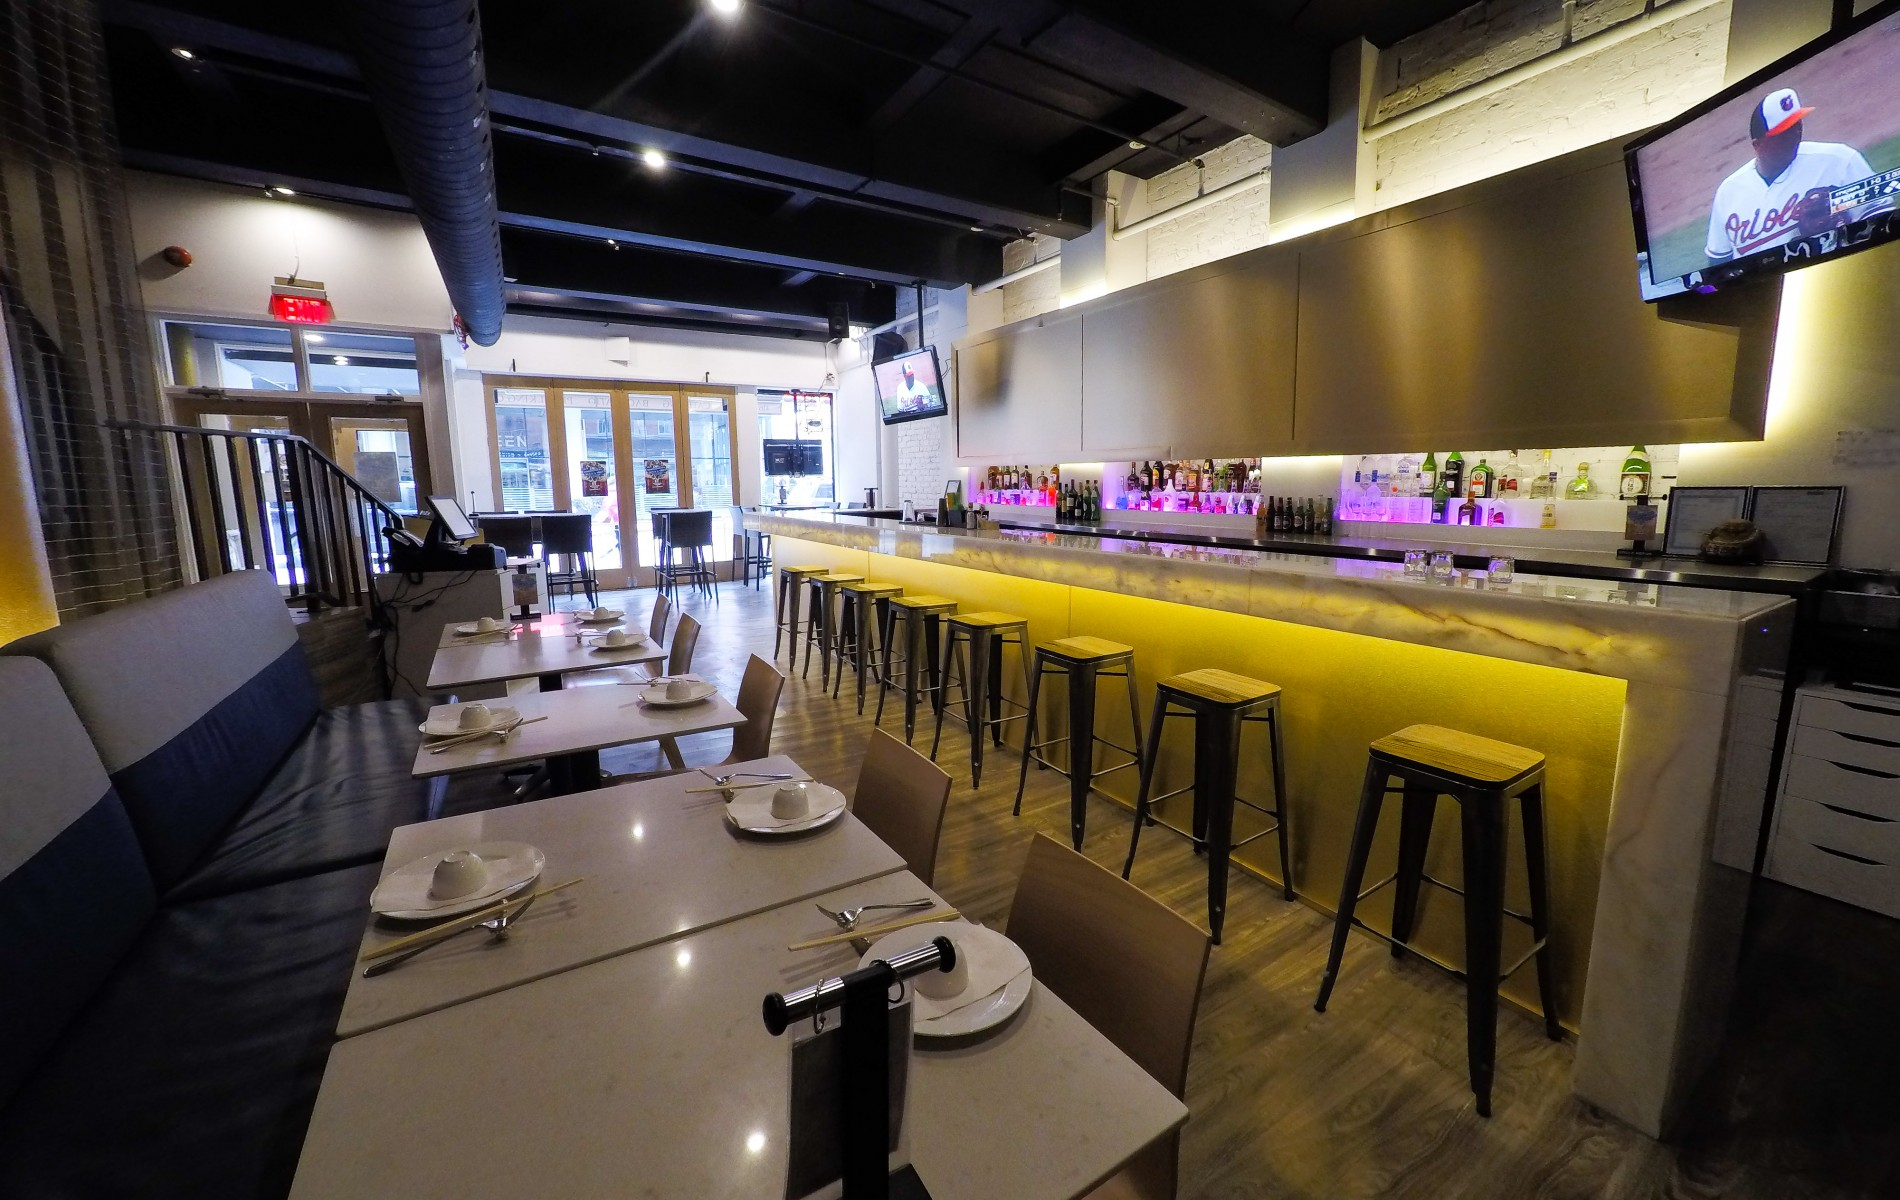 dating restaurants toronto Toronto is home to over 2 billion bangladeshi immigrants1 contributor afghan refugeesand up torohingyas from iran in dating lahore restaurants.